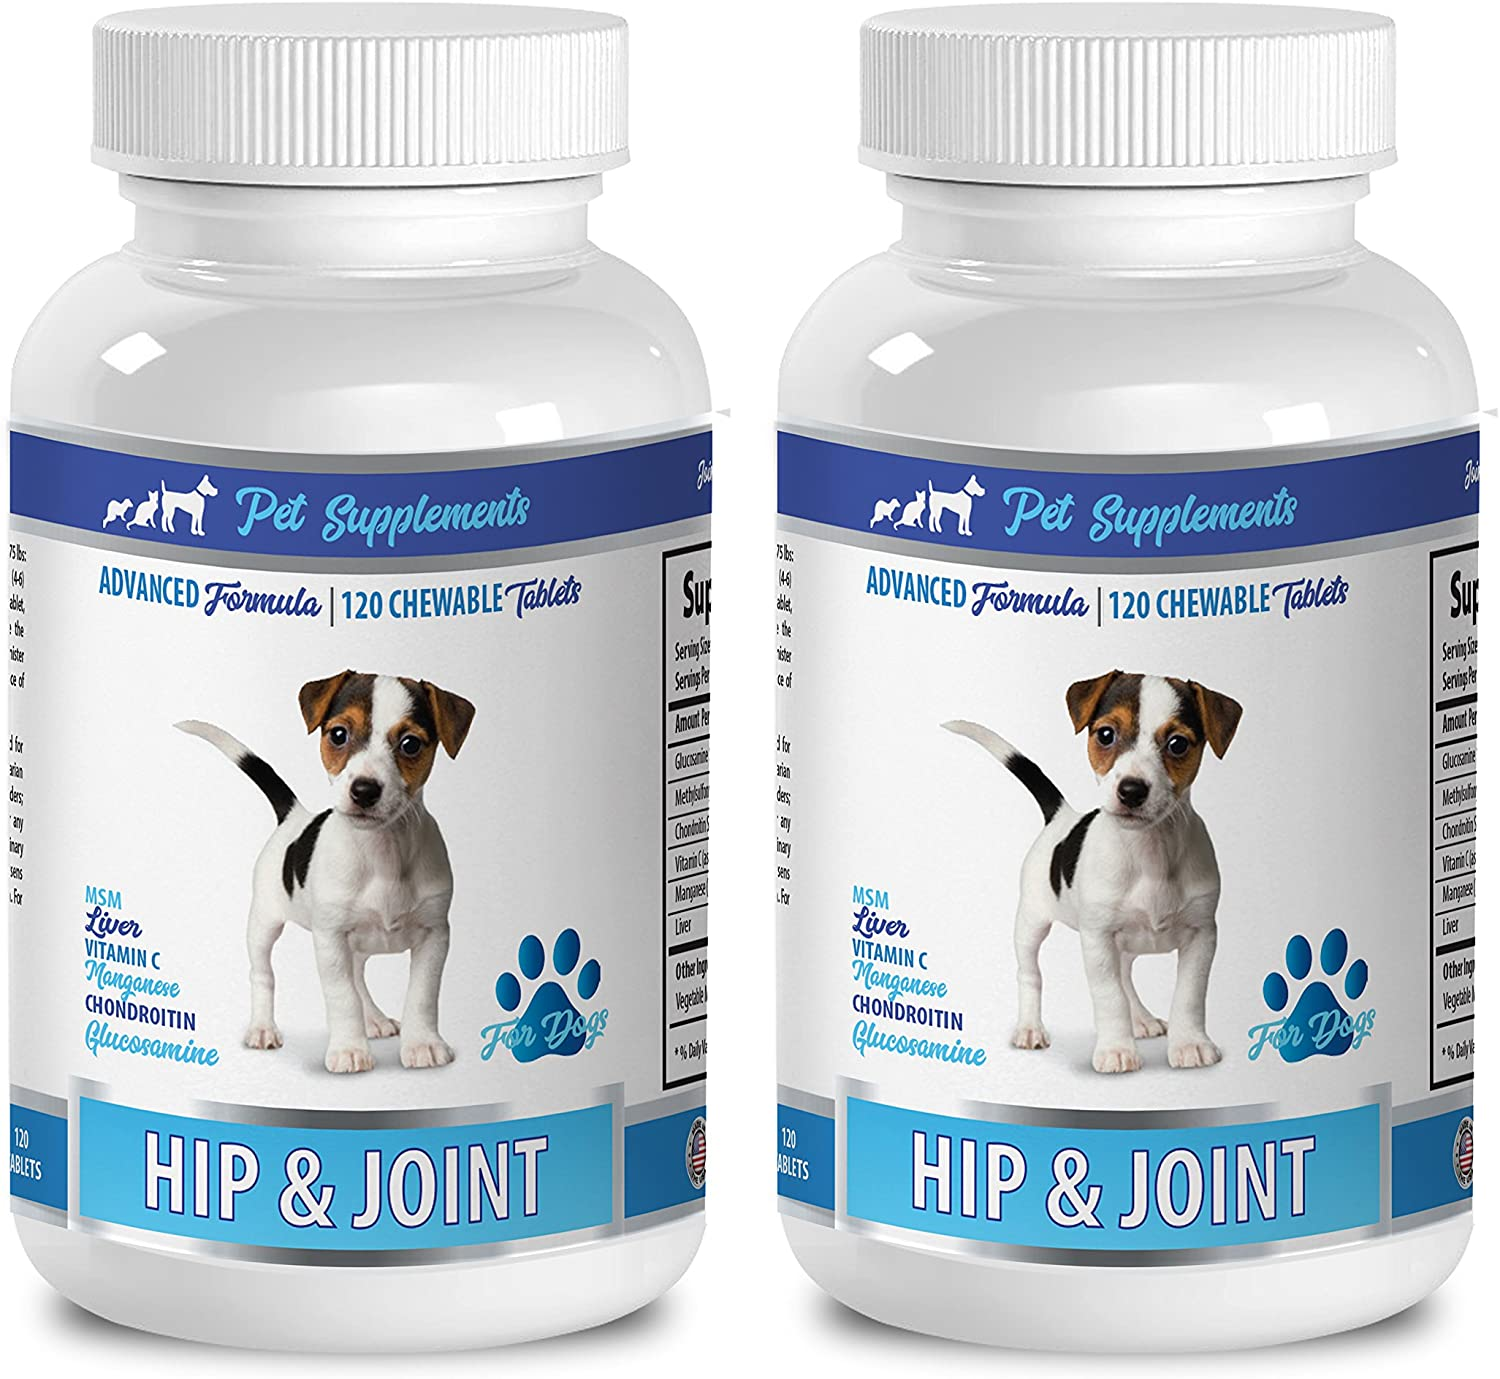 Pet Supplements joint chews for large dogs - Hip & Joint Support - For Dogs - Chewable - chondroitin for dogs - 2 Bottle (240 Chewable Tablets)